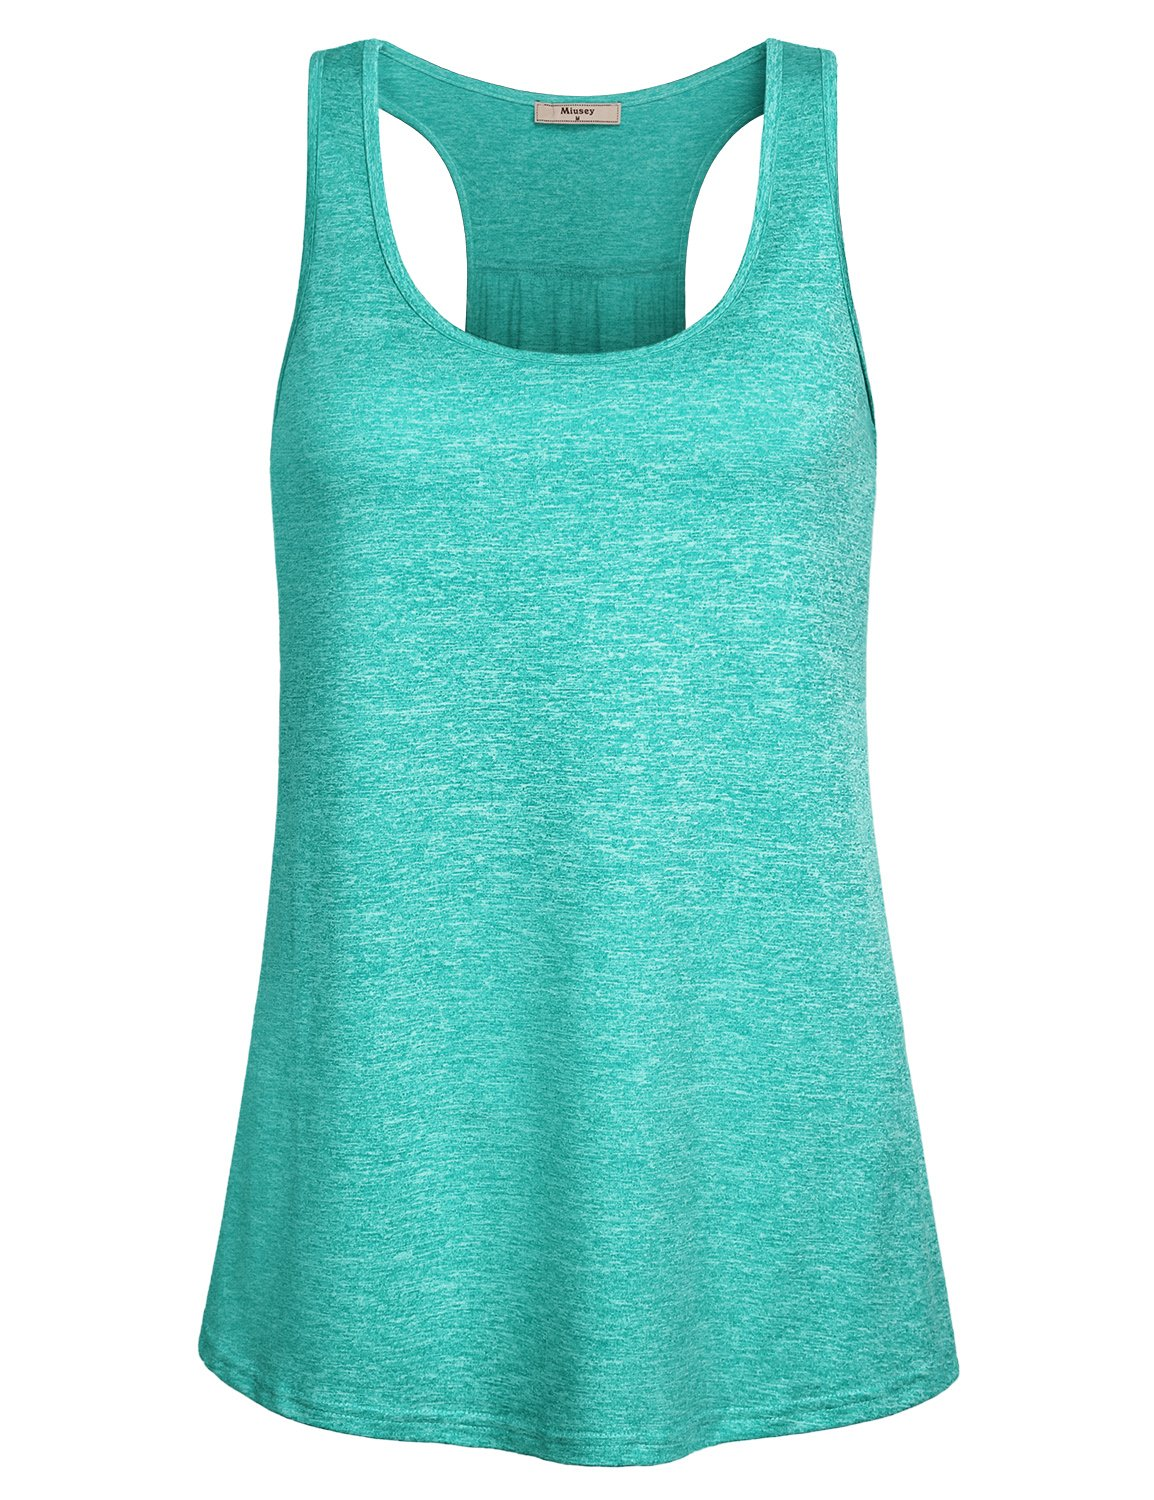 Miusey Gym Tops Racerback Design Round Neck Sleeveless Army Camouflage Yoga Sports Stretchy Lightweight Comfy Breathable Cool Workout Tank Green M